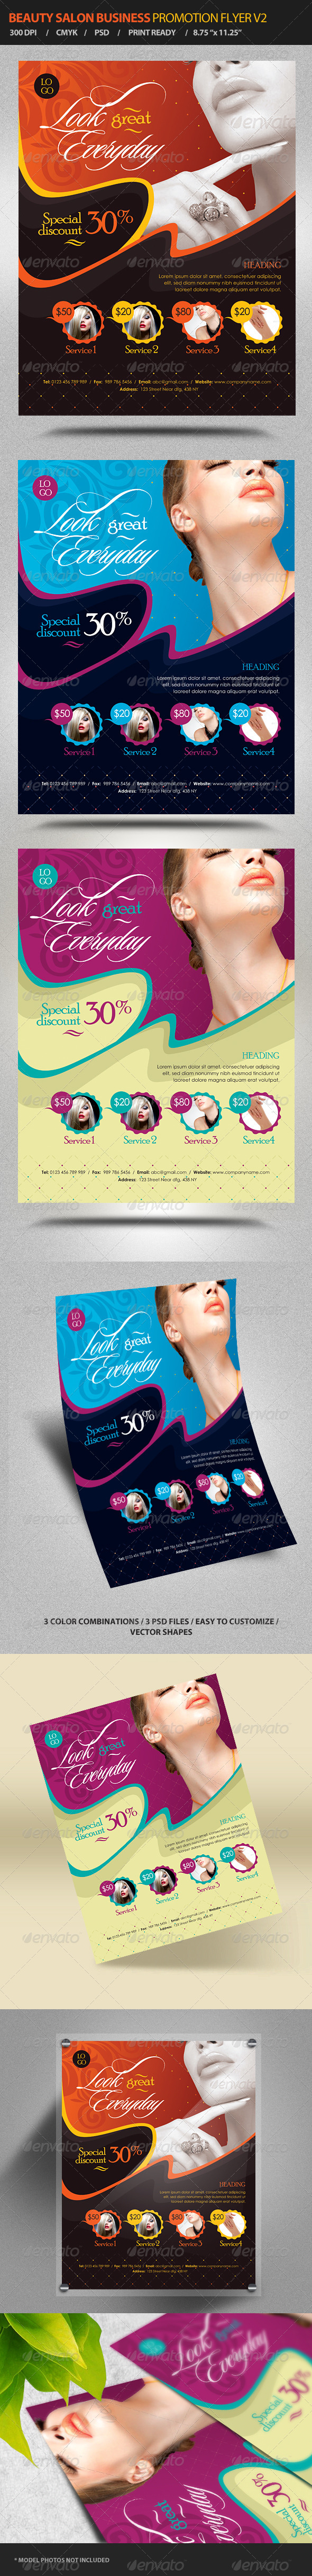 Beauty Salon Business Promotion Flyer Vol 2 - Corporate Flyers